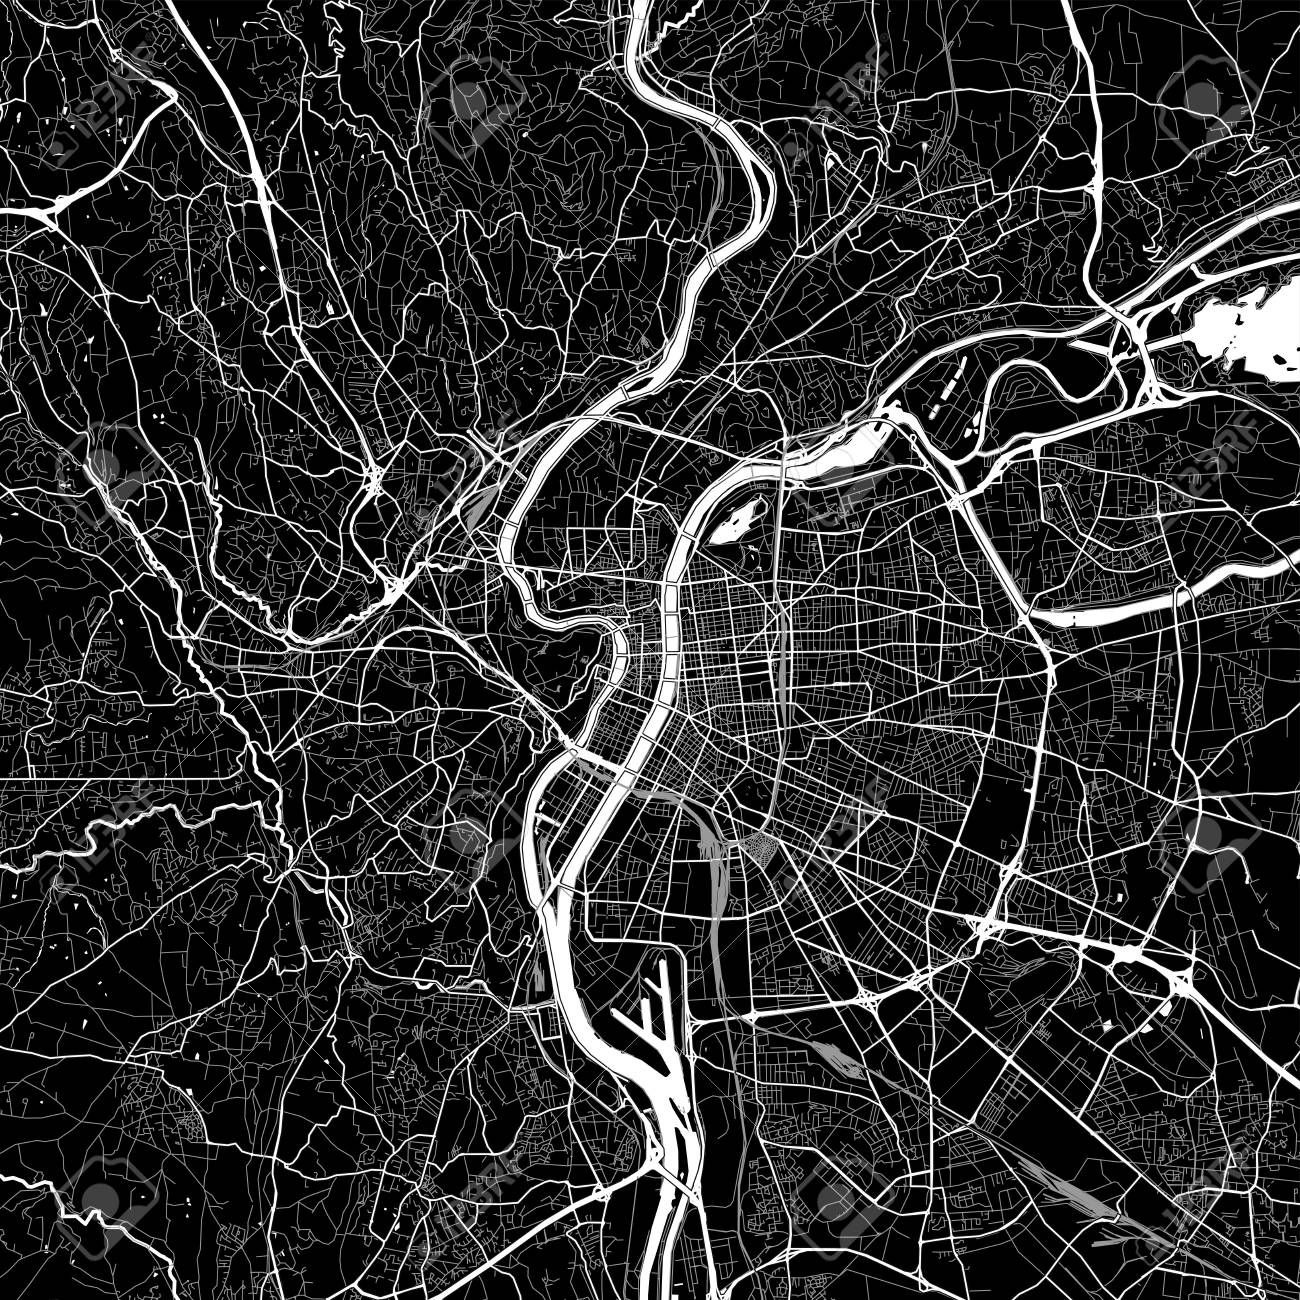 Area Map Of Lyon France Dark Background Version For Infographic